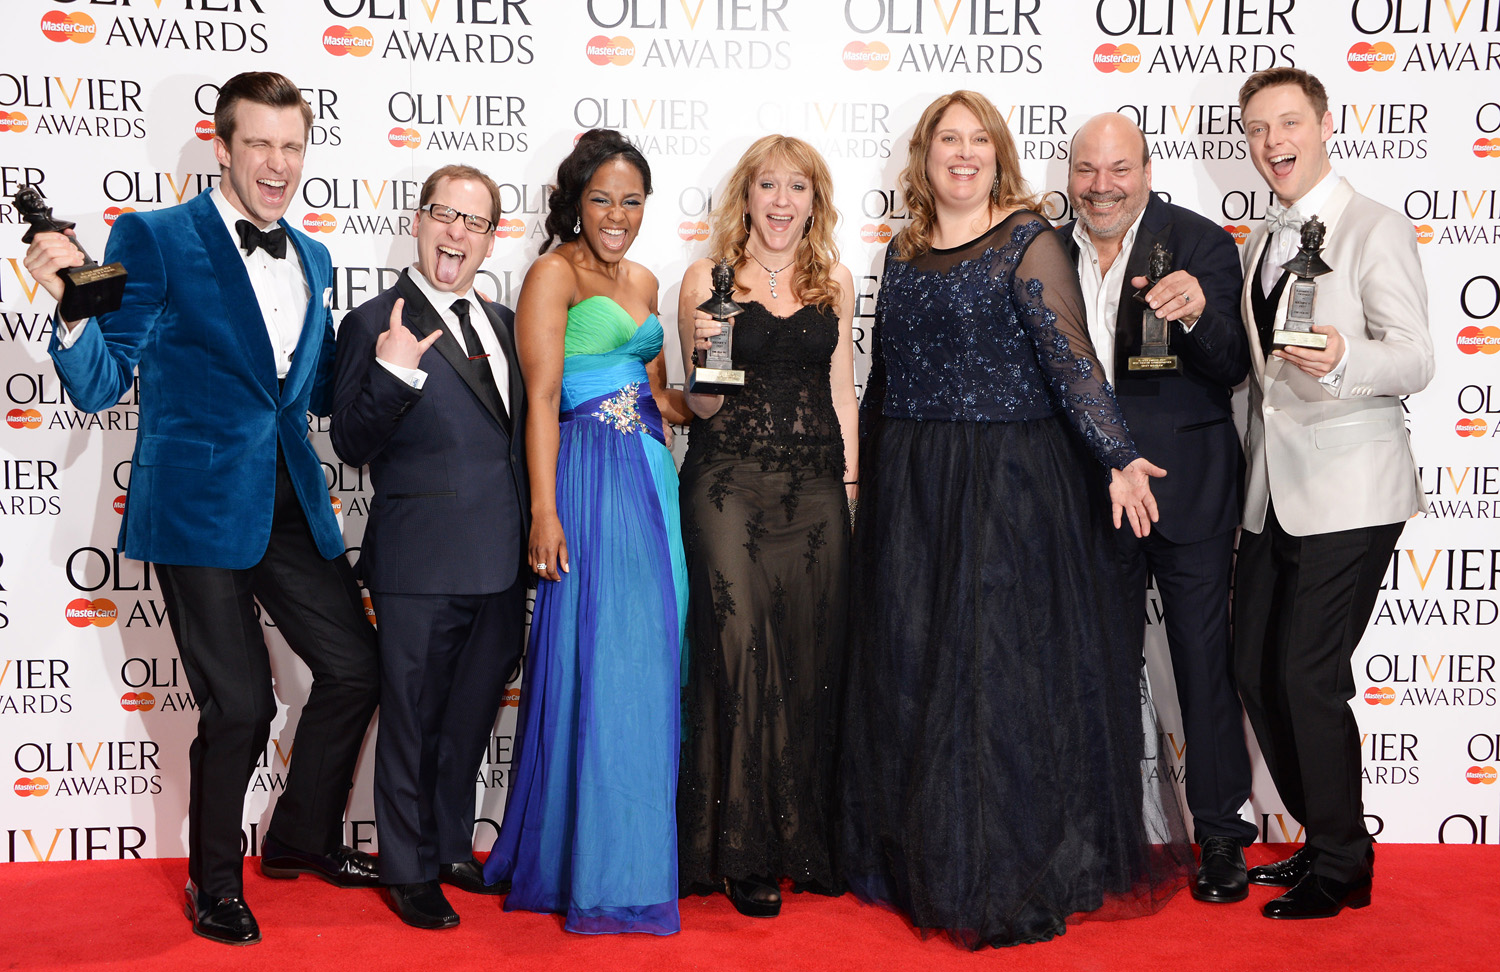 From left: Gavin Creel, Jared Gertner, Alexia Khadime, Sonia Friedman, Anne Garefino, Casey Nicholaw and Stephen Ashfield celebrate the Mastercard Best New Musical Award for  The Book Of Mormon  in the press room at the Laurence Olivier Awards at The Royal Opera House on April 13, 2014 in London.